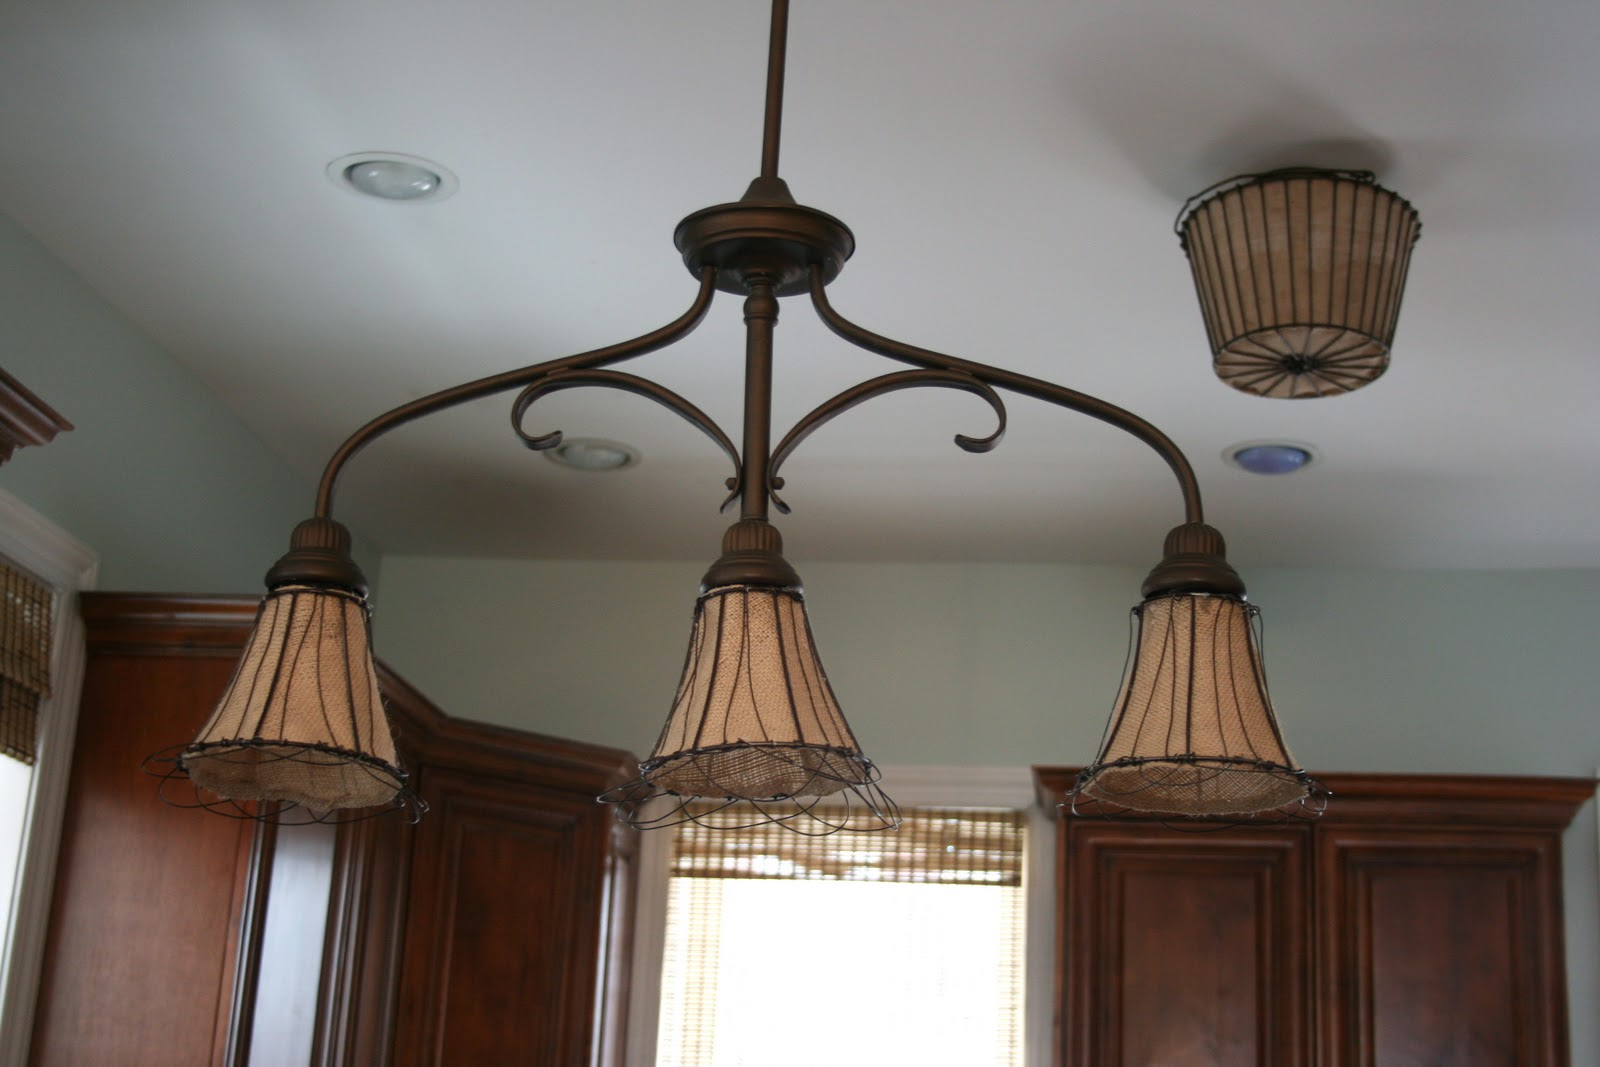 How to make burlap light shades home stories a to z when we rehabbed our home 3 12 years ago i really wanted tiffany lighting everywhere on my first level it was in at the time and i liked how it paid arubaitofo Images